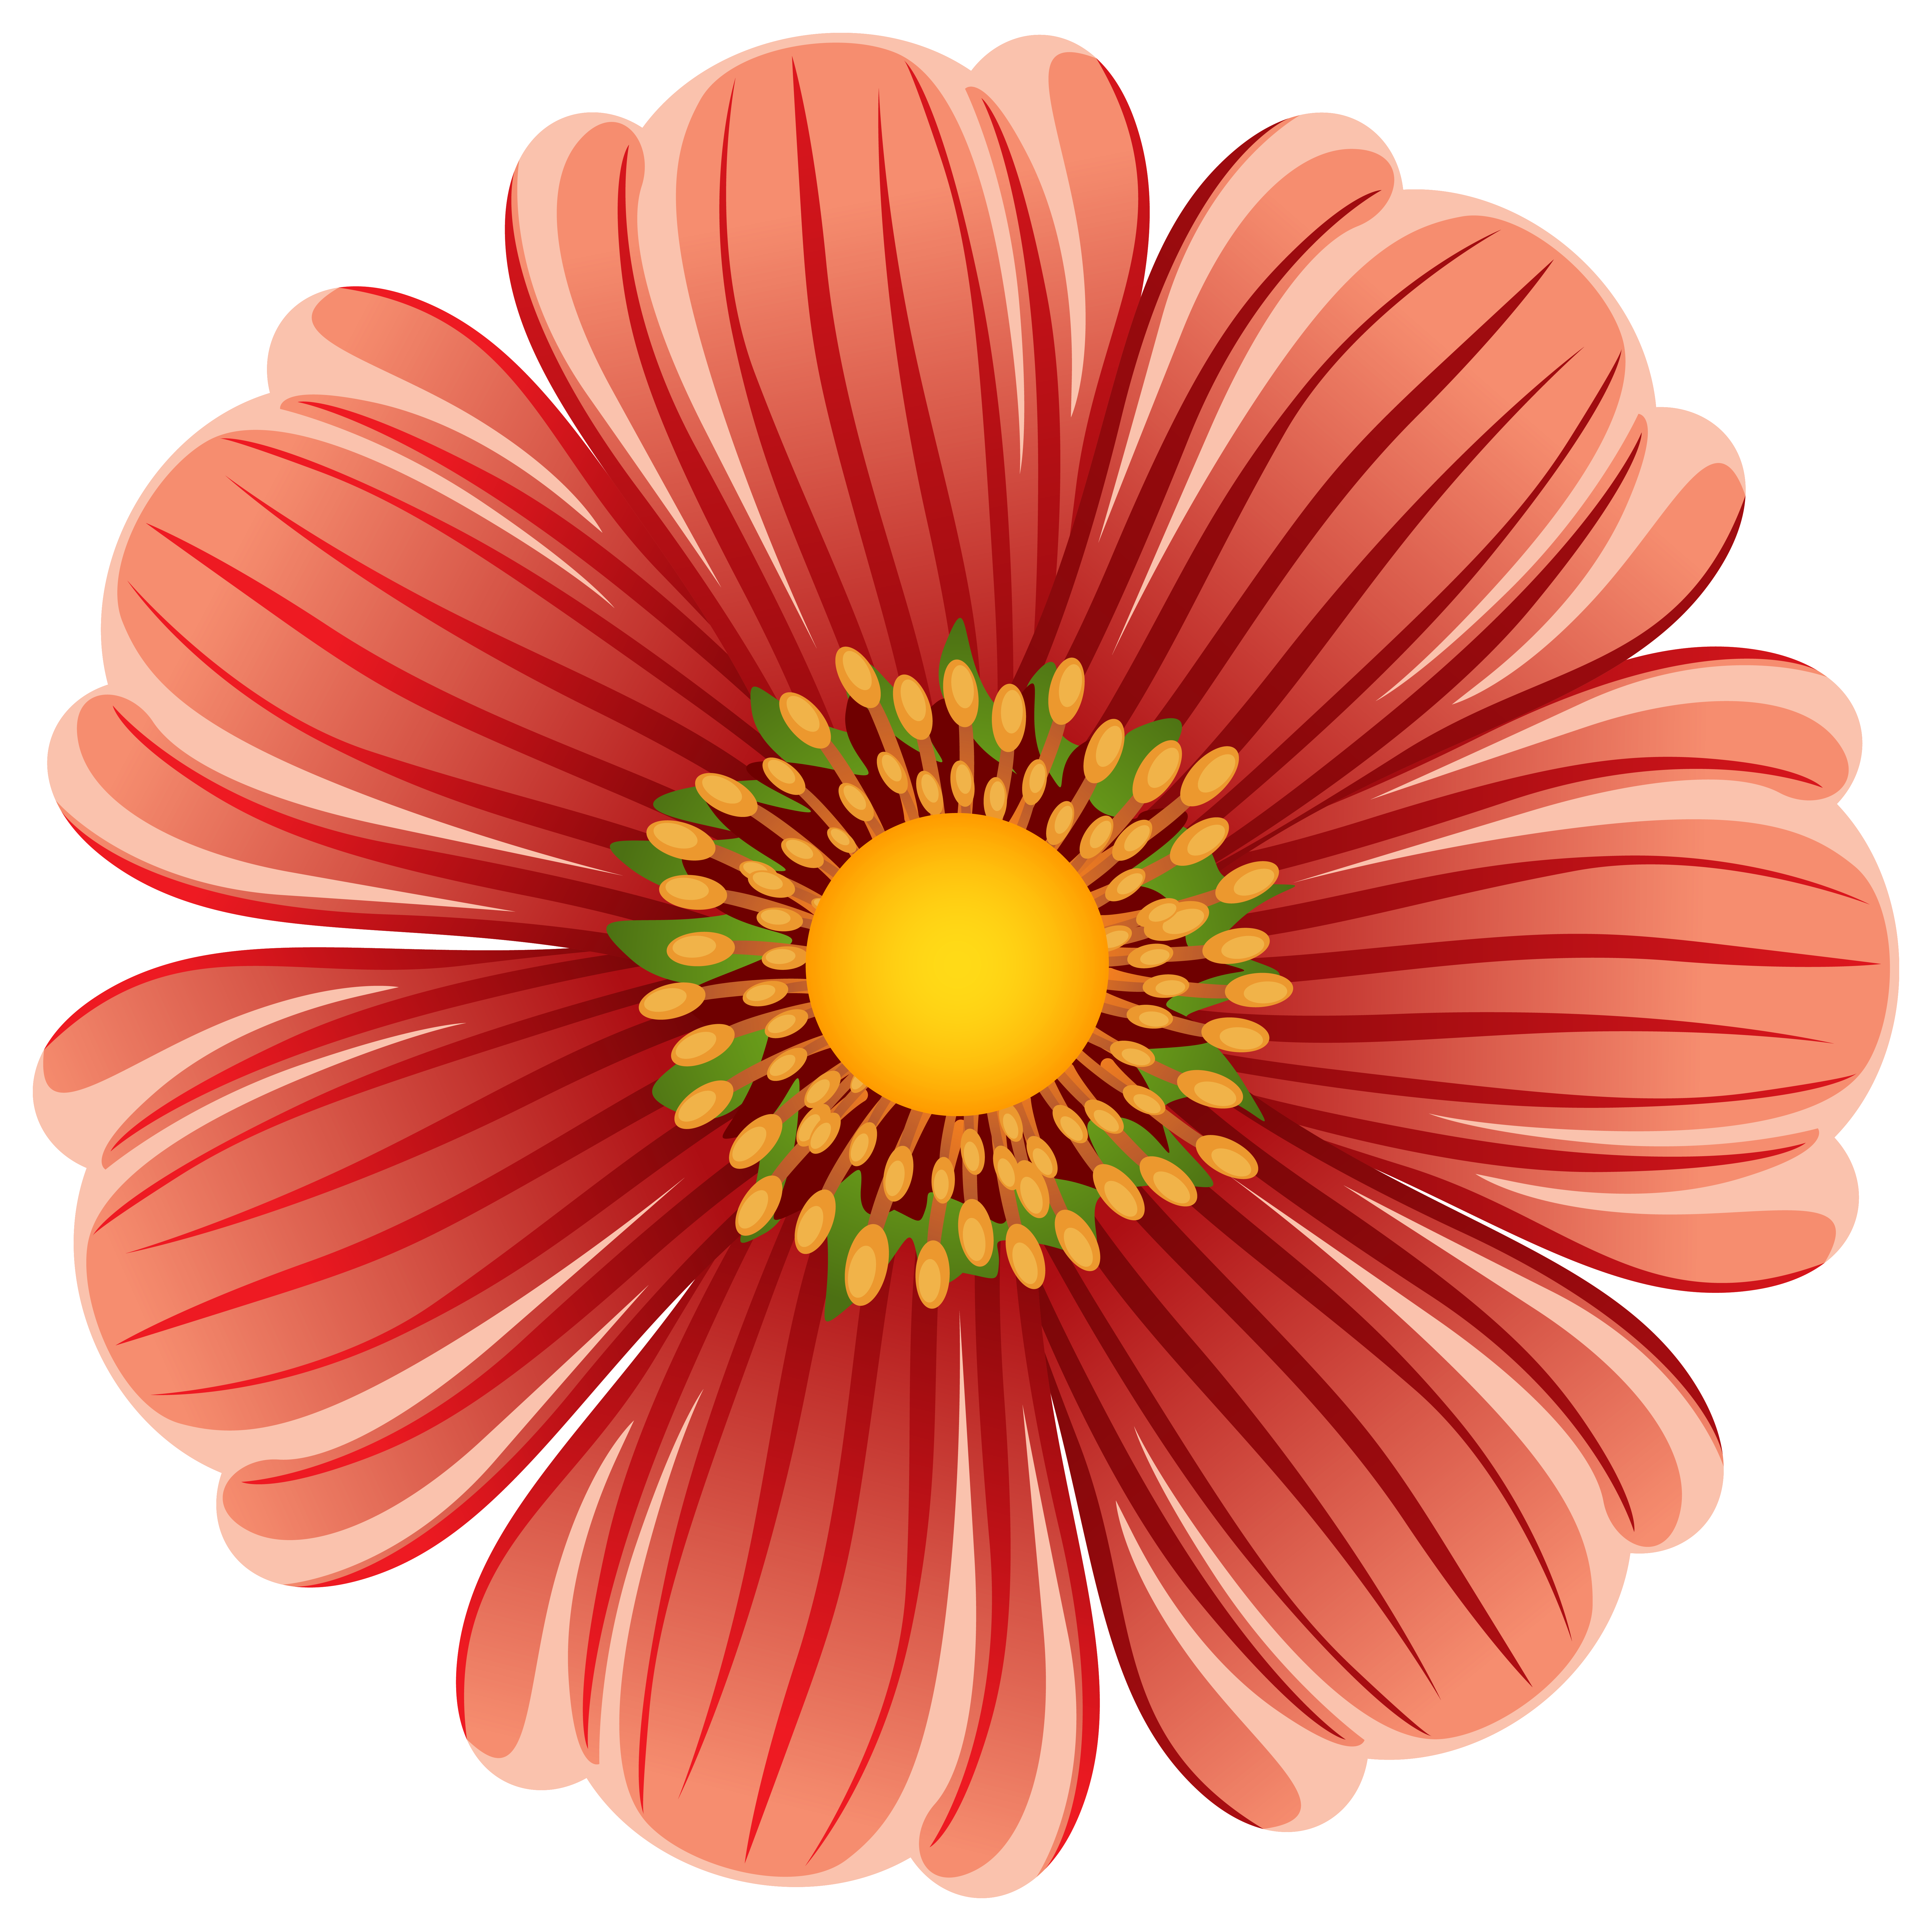 Giant flower clipart Clipground